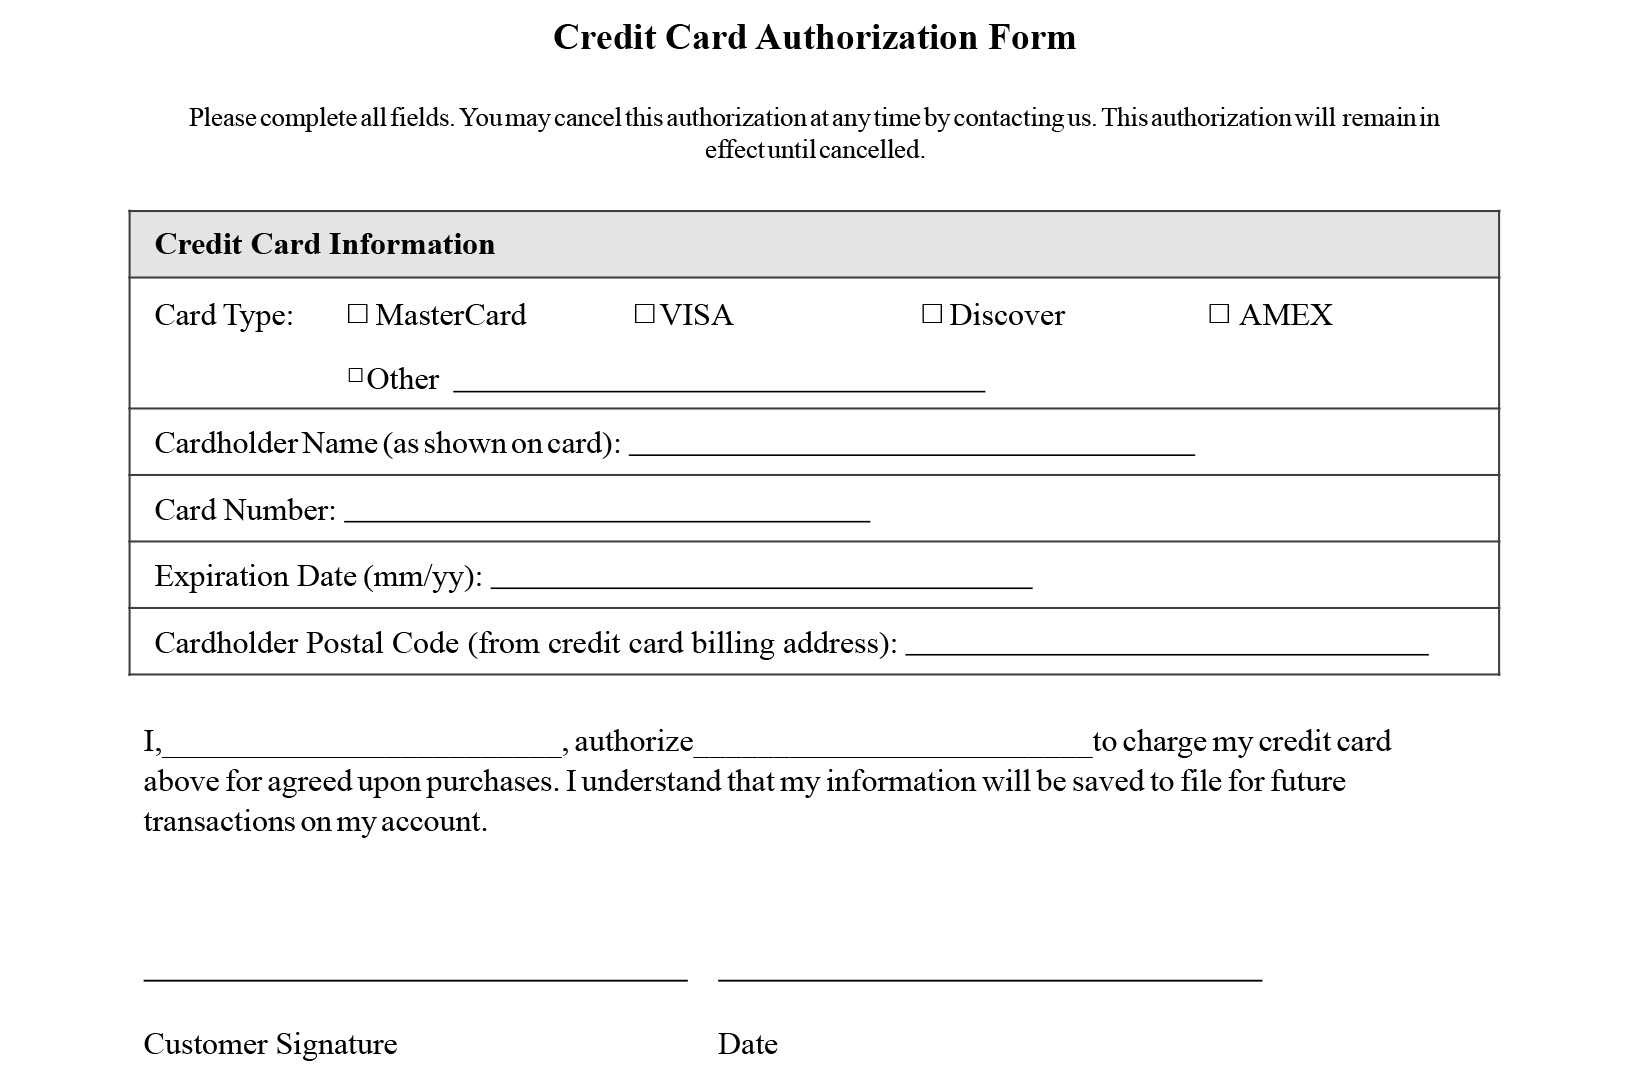 Credit Card Authorization Form Templates [Download] Inside Credit Card On File Form Templates